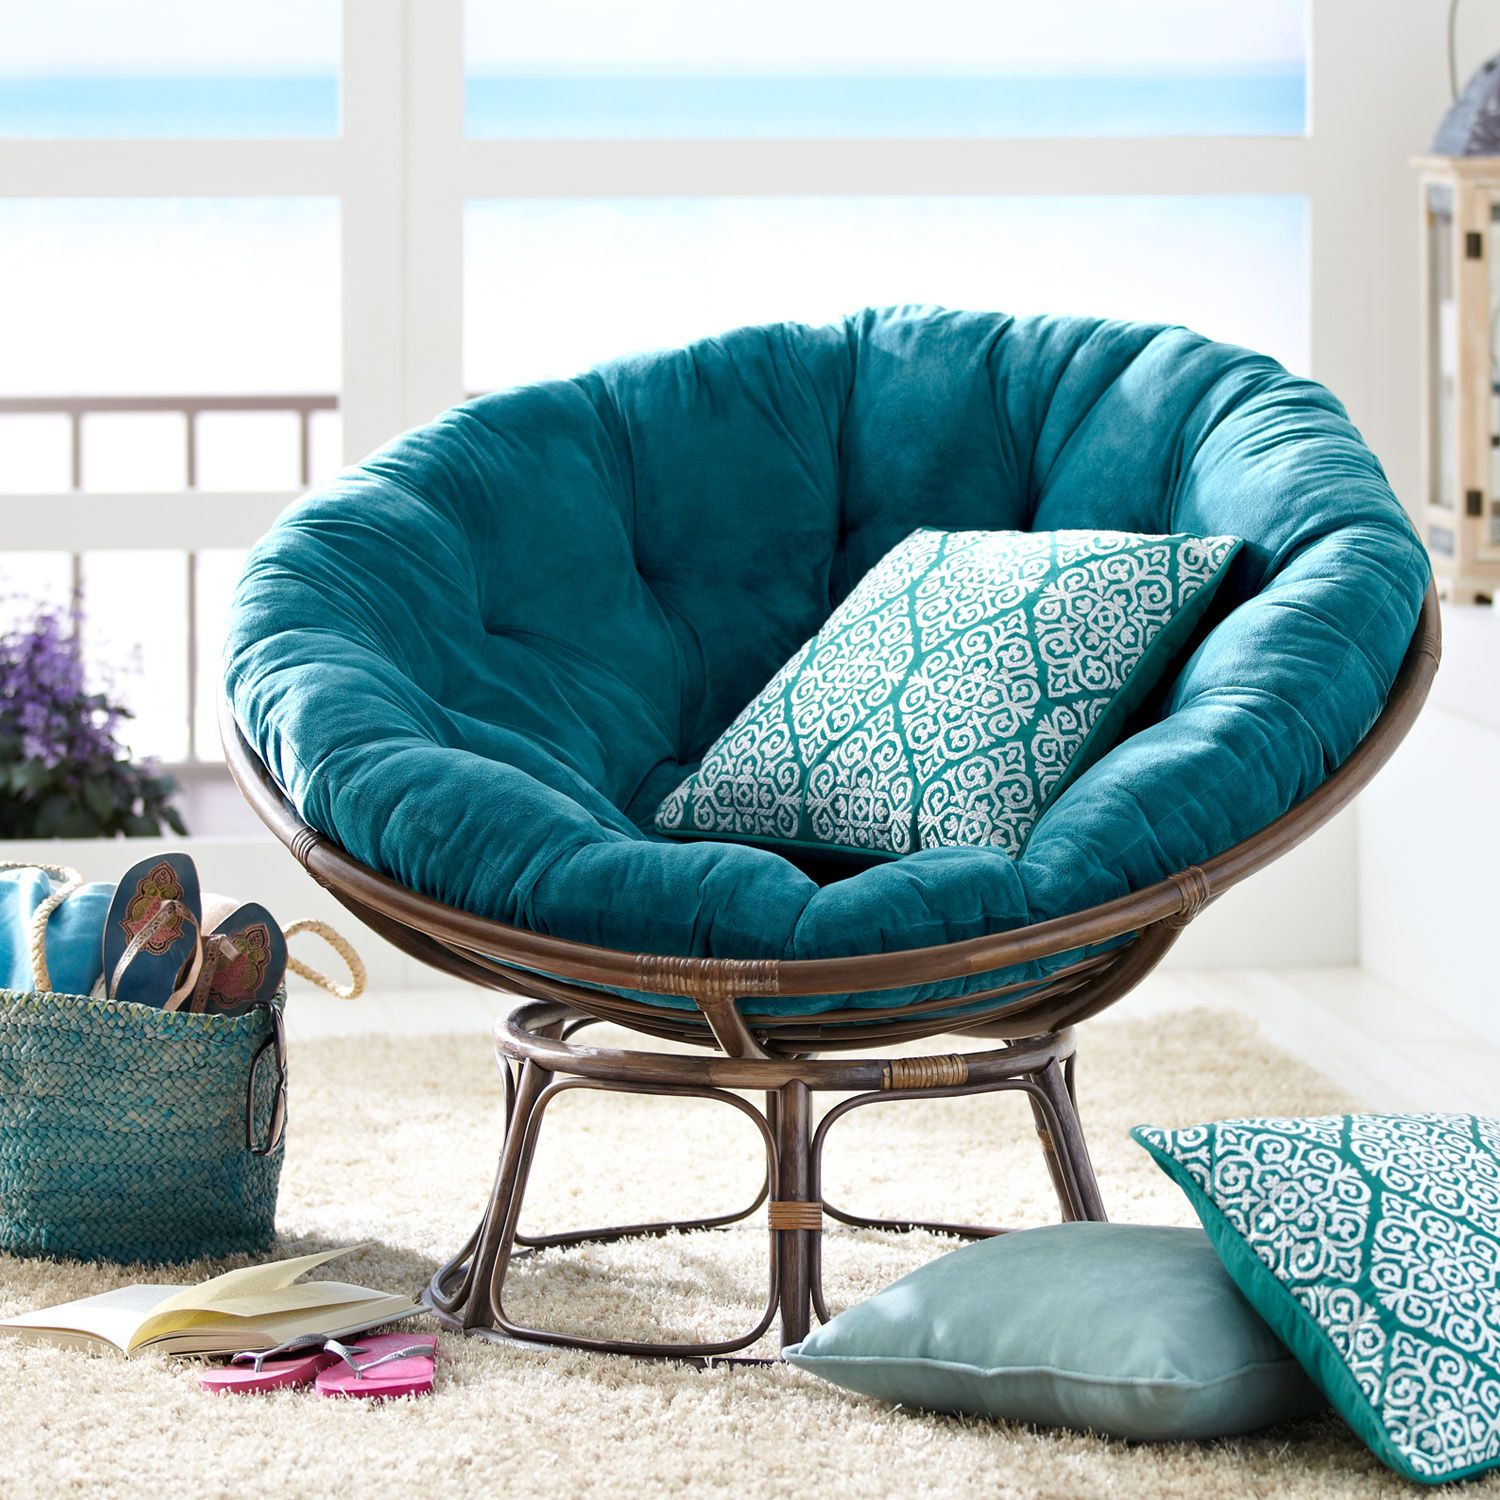 Astounding Papasan Taupe Chair Frame In 2019 Papasan Chair Papasan Onthecornerstone Fun Painted Chair Ideas Images Onthecornerstoneorg